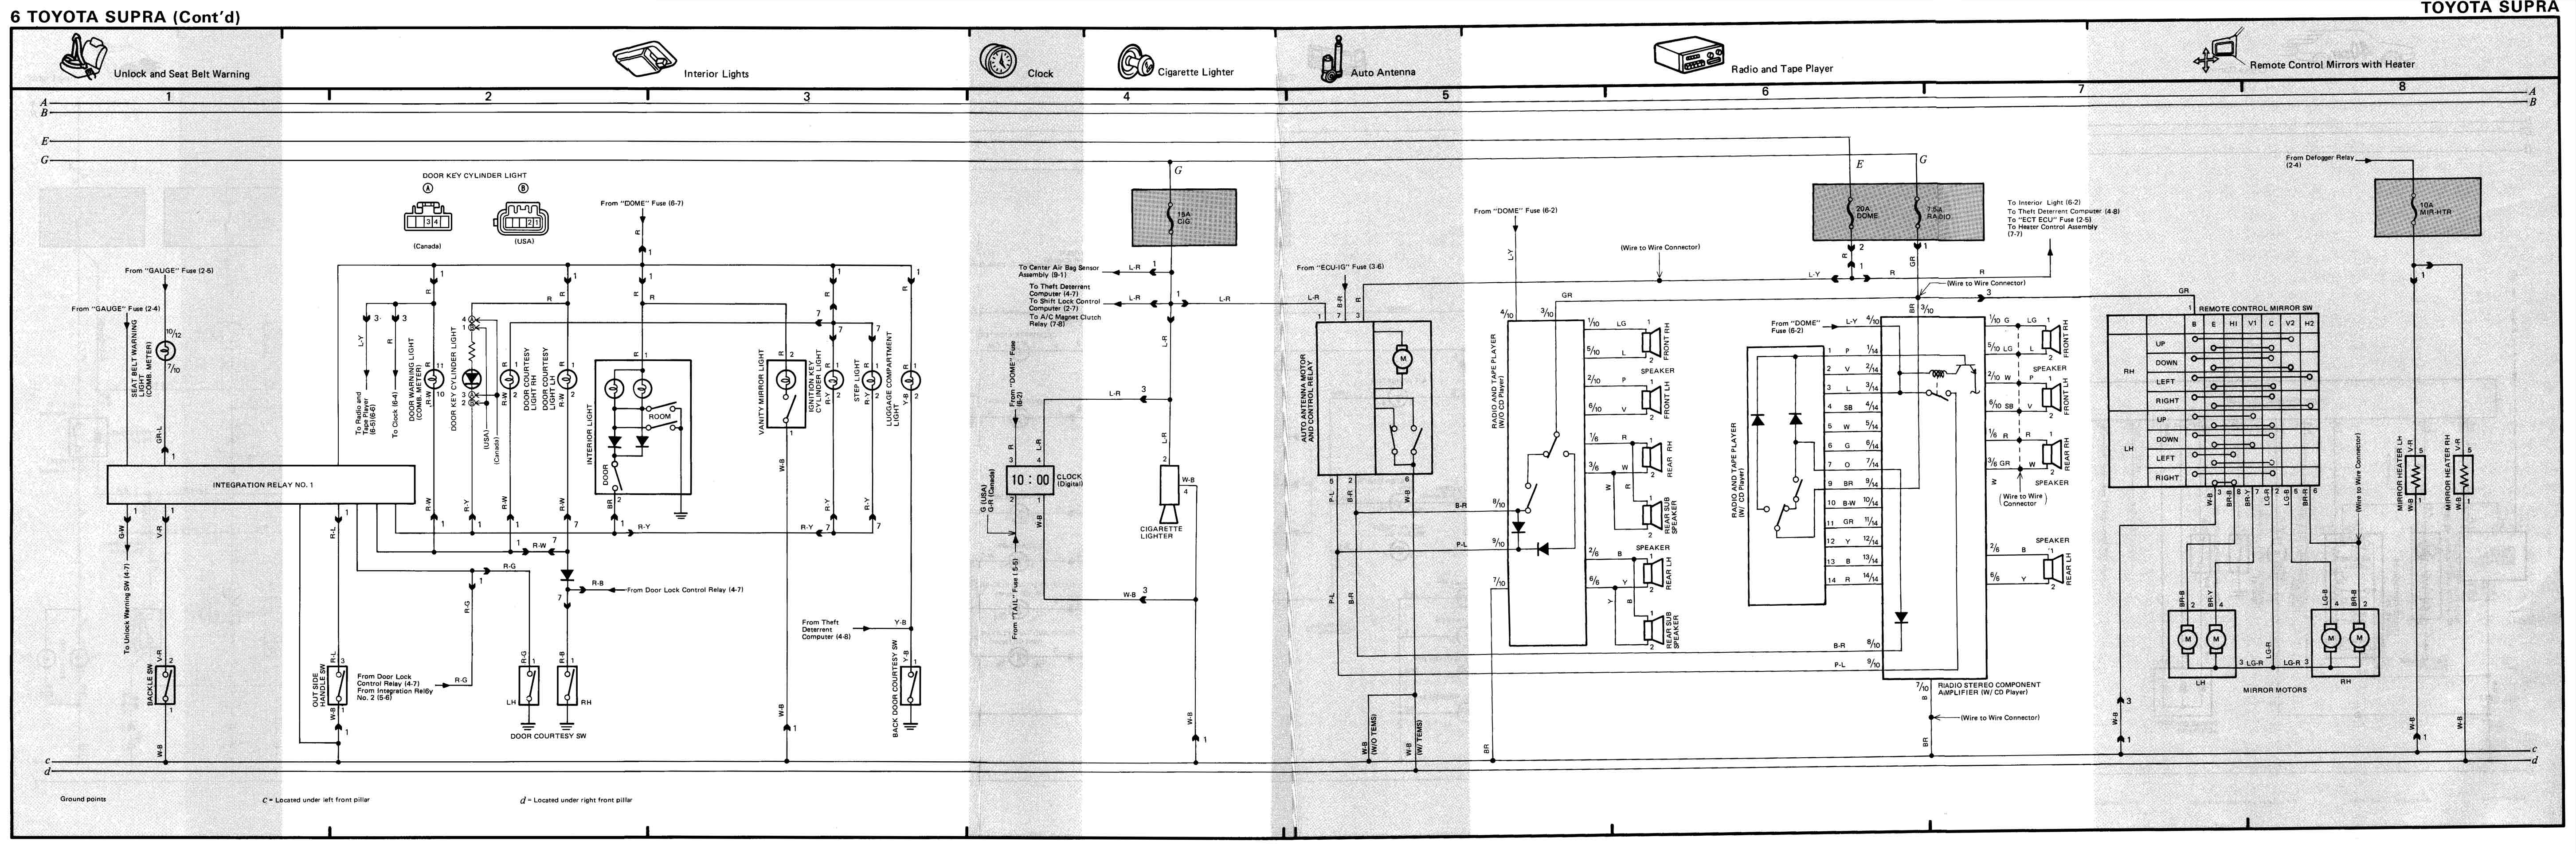 7mge Wiring Harness 7mgte Wiring Harness Diagram Wiring Diagrams